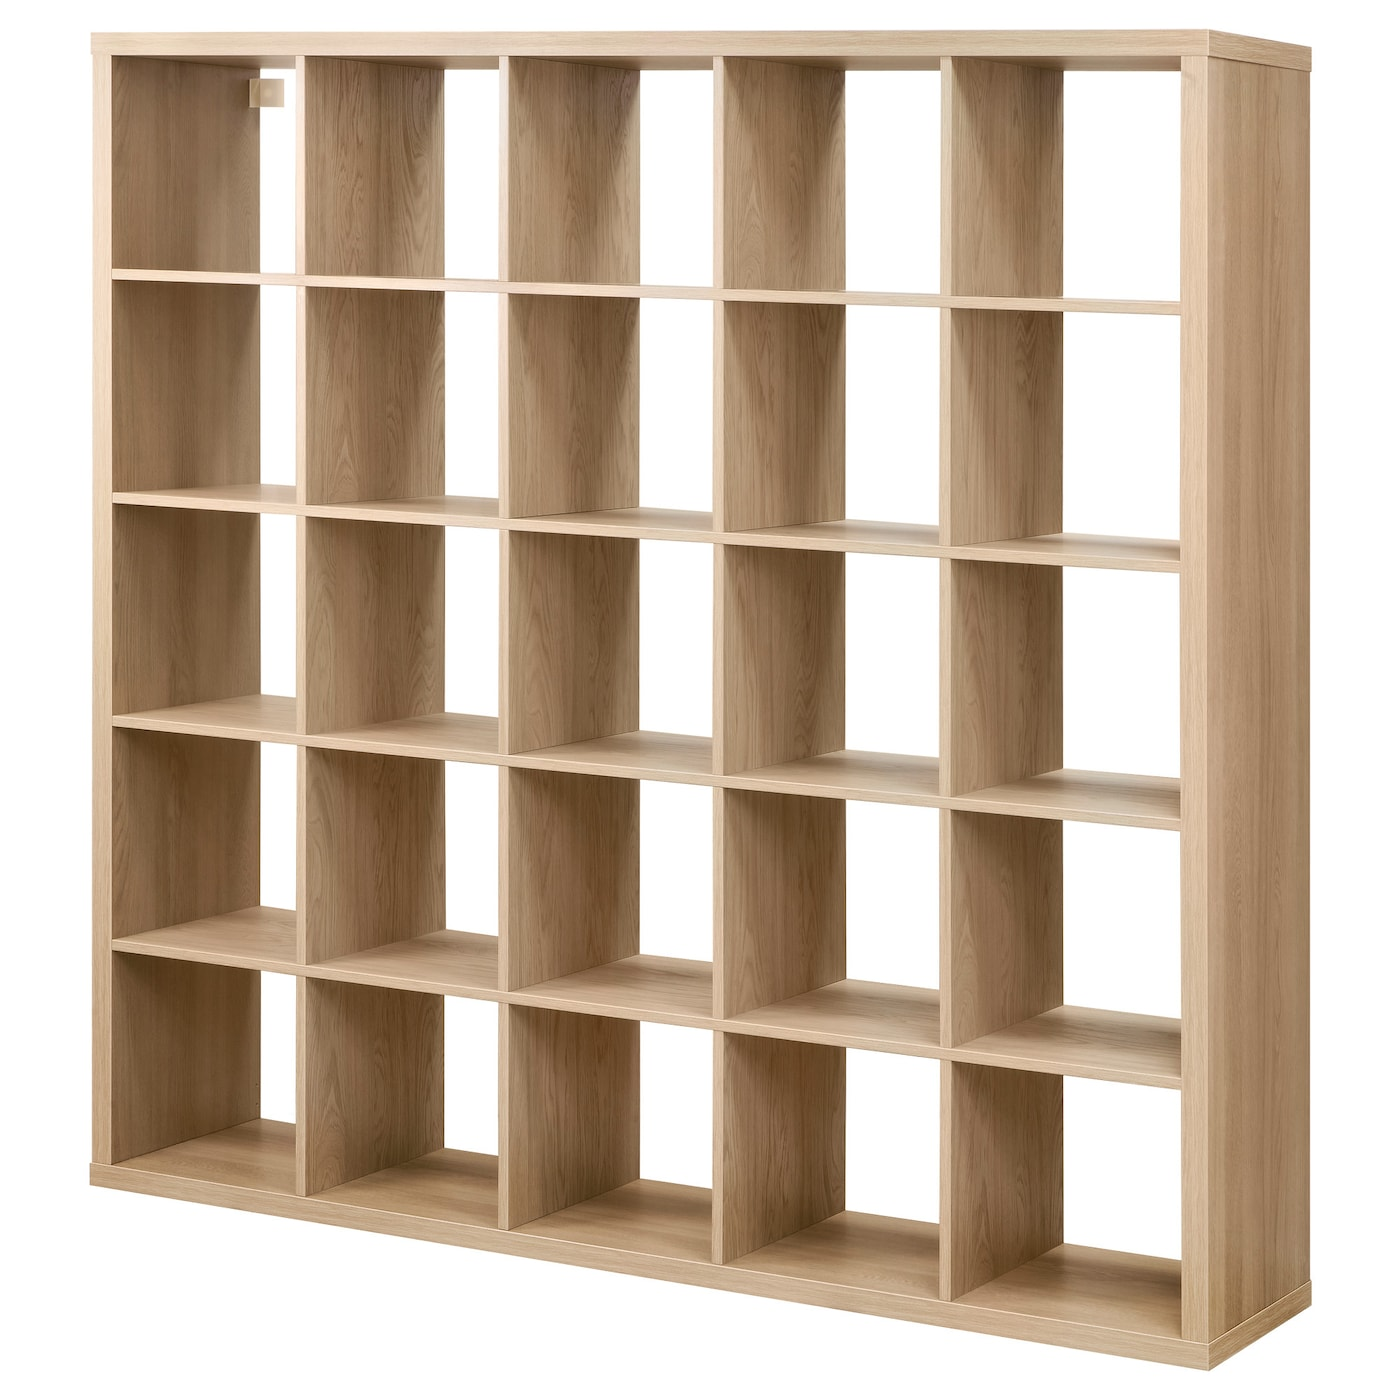 kallax shelving unit oak effect 182x182 cm ikea. Black Bedroom Furniture Sets. Home Design Ideas